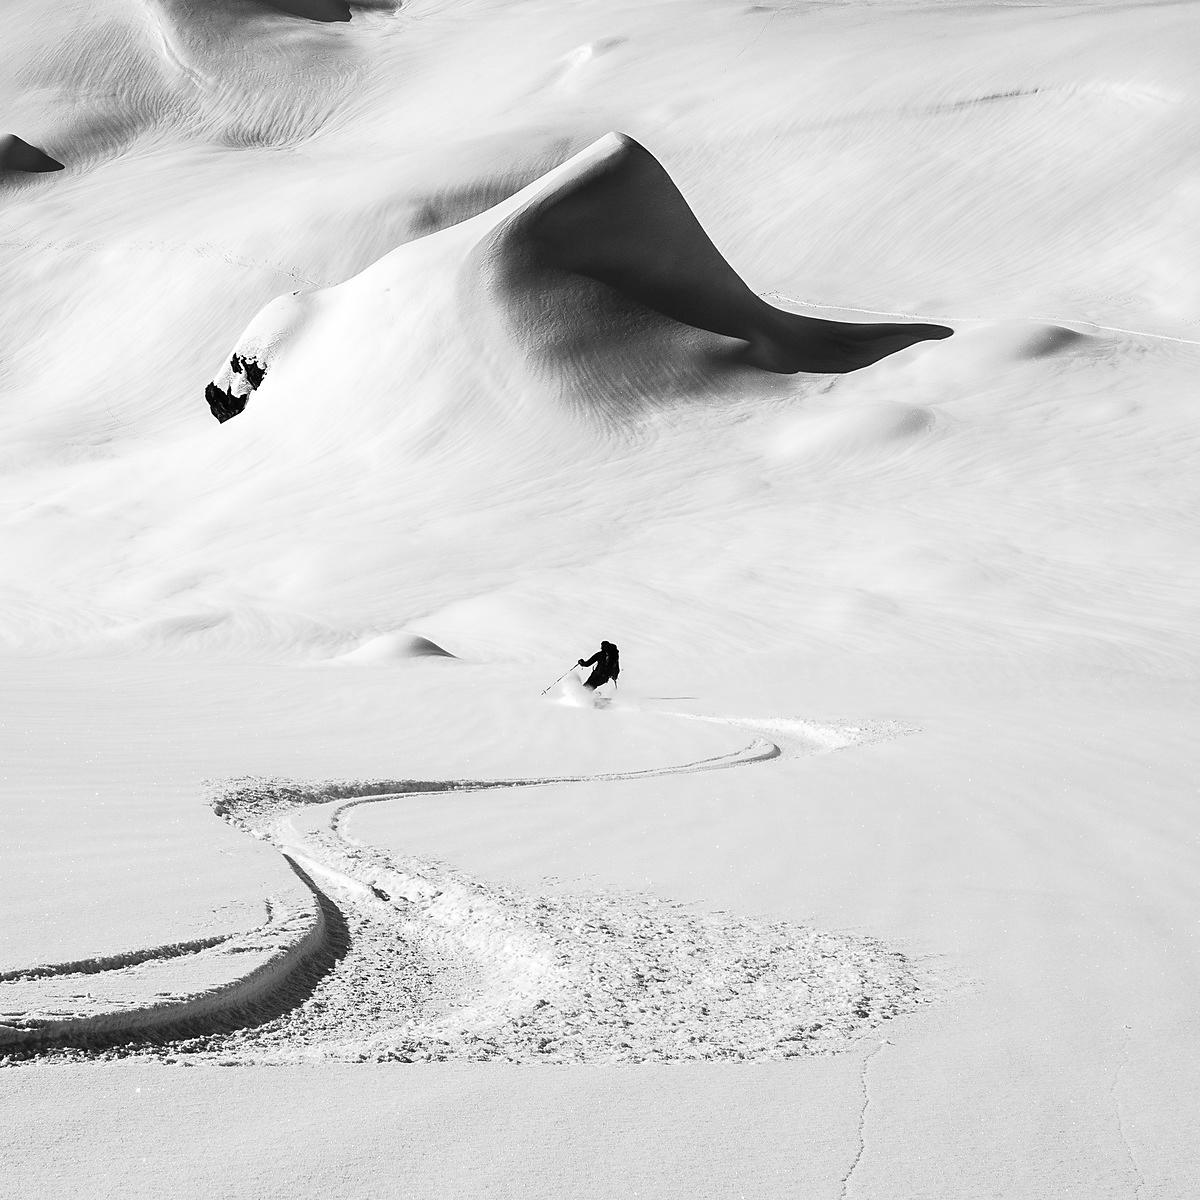 photo montagne noir et blanc -   photo montagne neige - photo skieur alpin